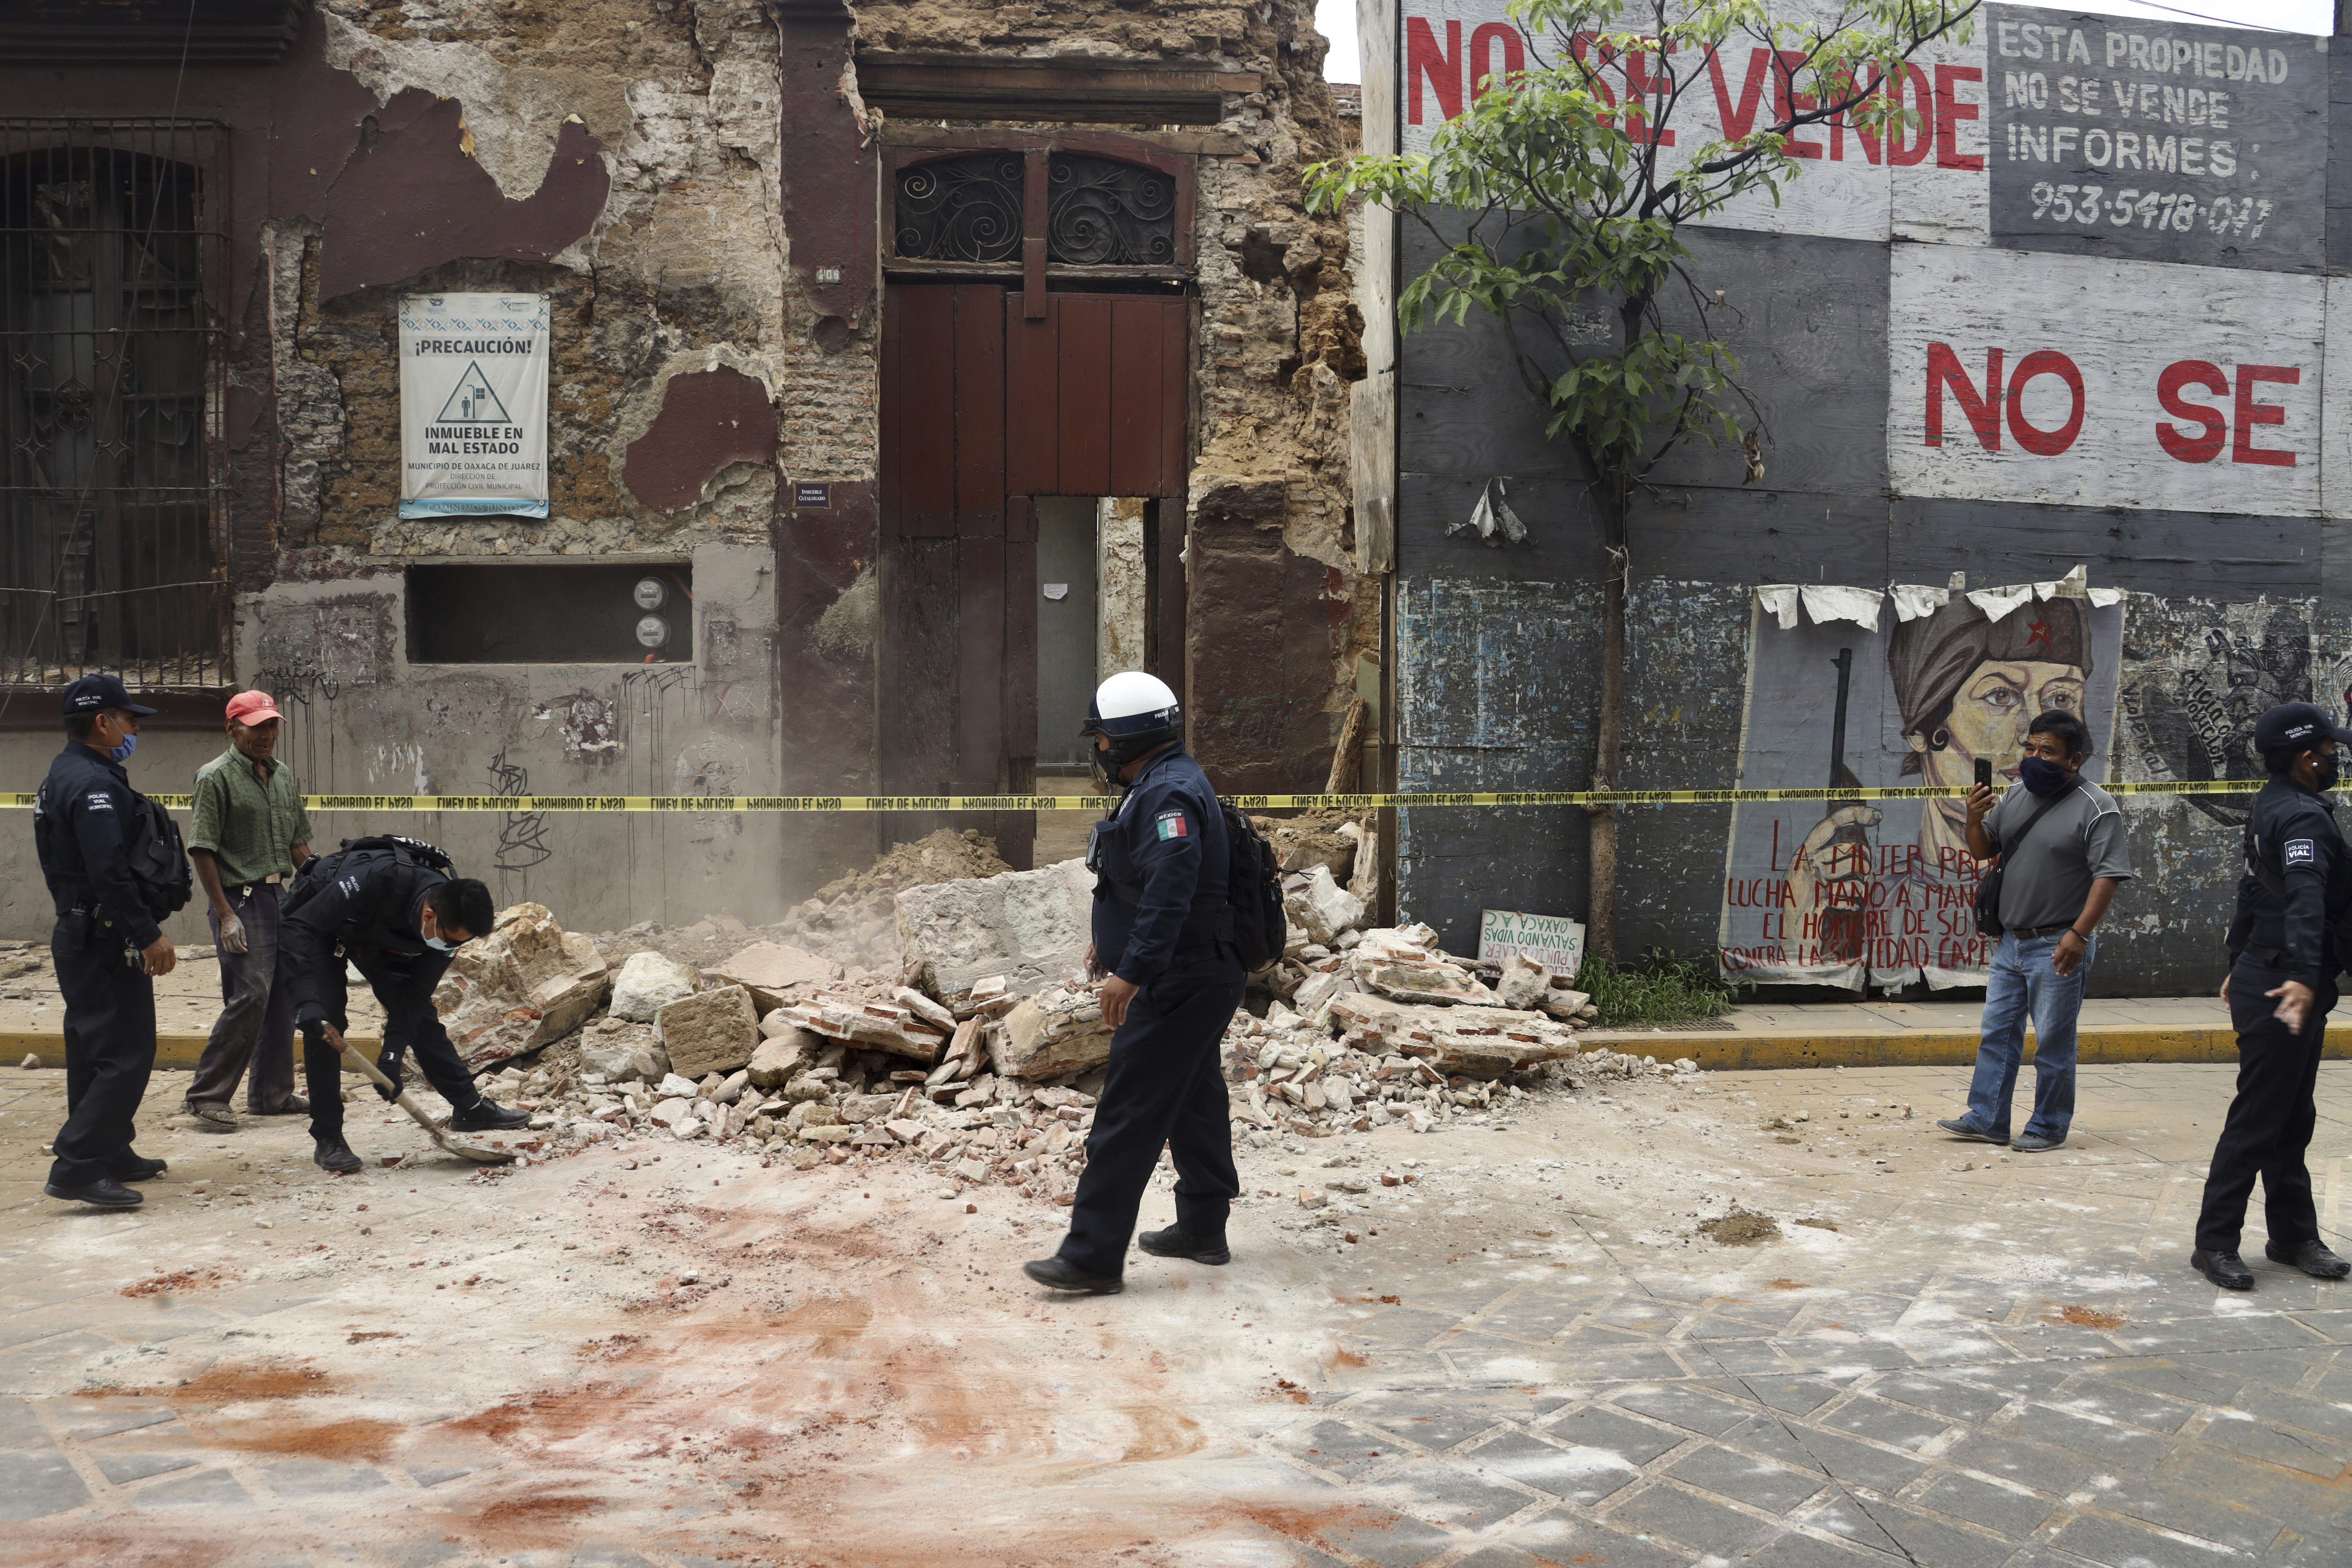 A policeman removes rubble from a building damaged by an earthquake in Oaxaca, Mexico, Tuesday, June 23, 2020. The earthquake was centered near the resort of Huatulco, in the southern state of Oaxaca. (AP Photo/Luis Alberto Cruz Hernandez)